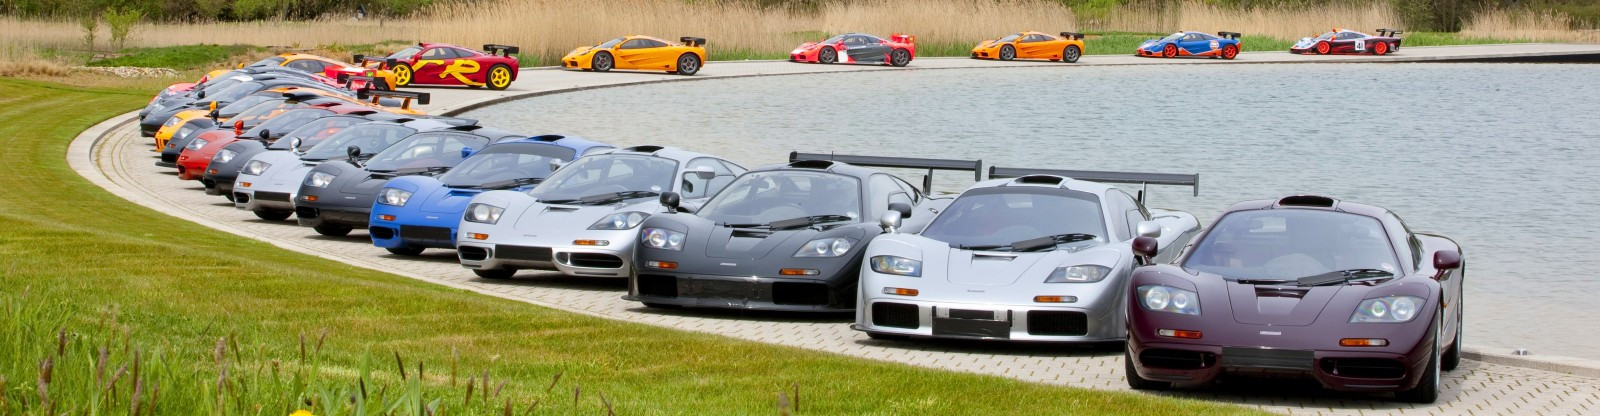 CarRevsDaily - Supercar Legends - McLaren F1 Wallpaper 4